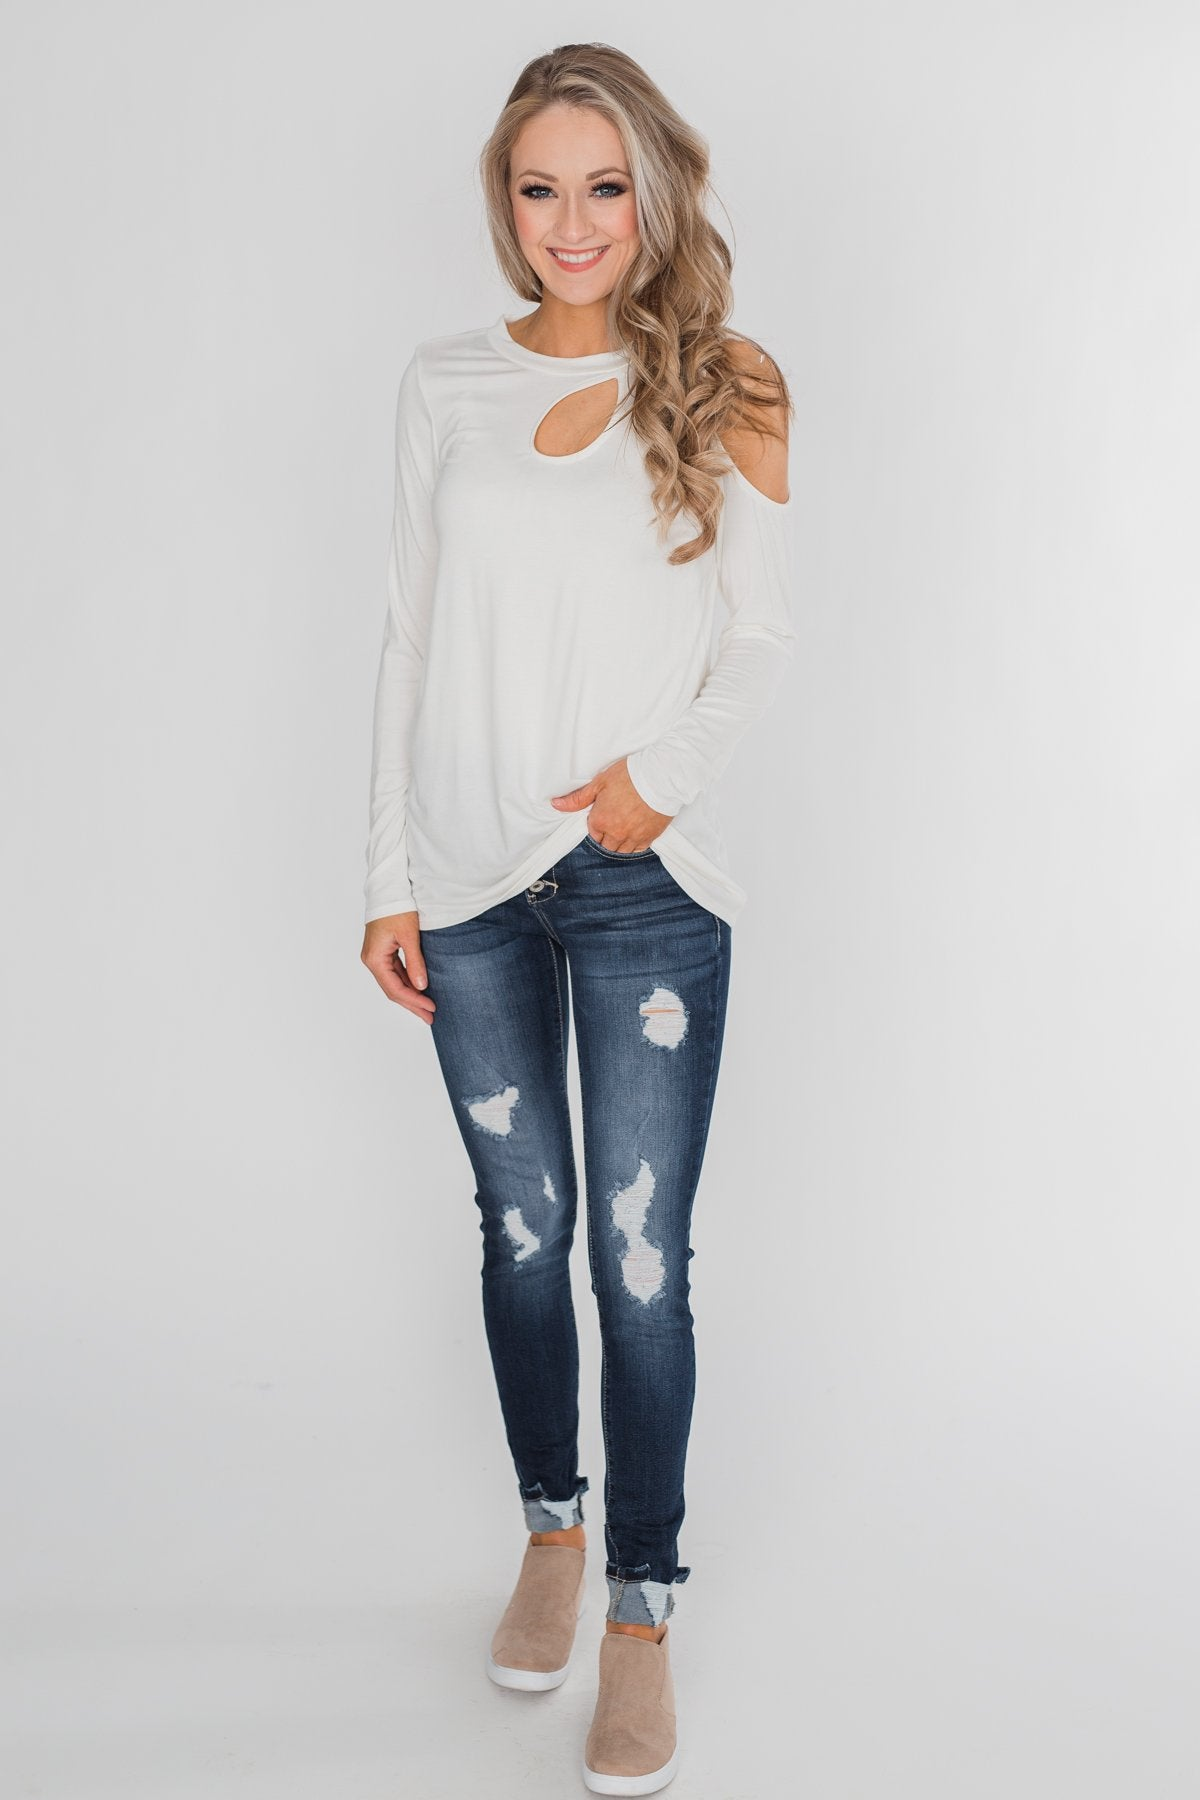 A Little Something Cold Shoulder Top - Ivory